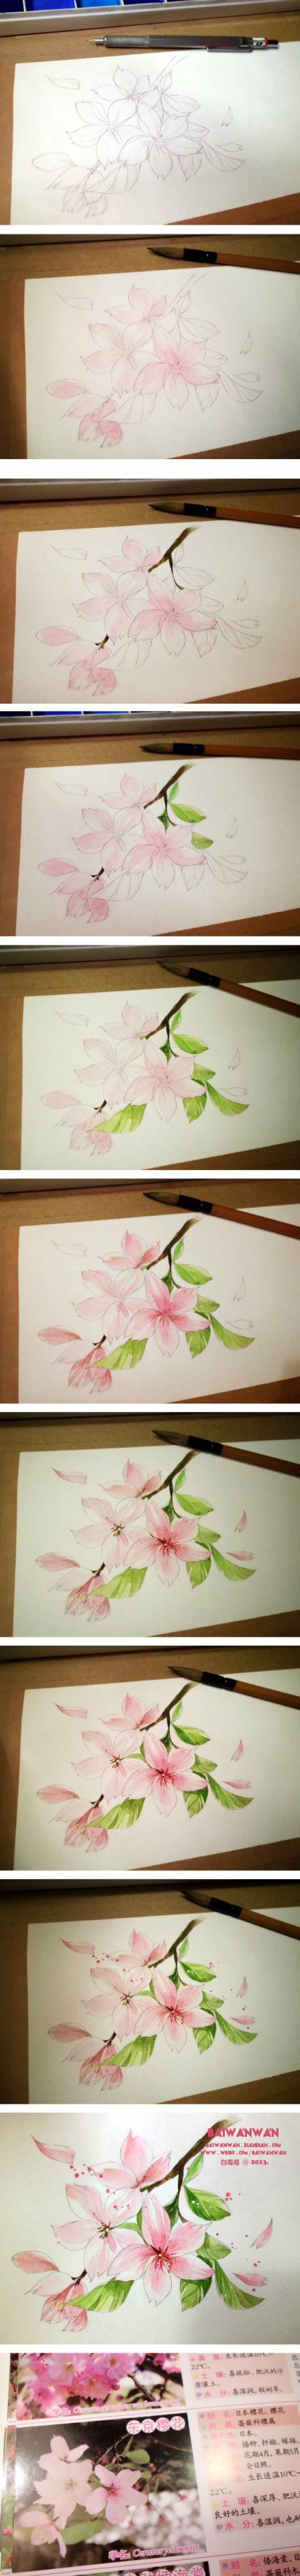 Watercolor tutorial - Cherry Blossoms